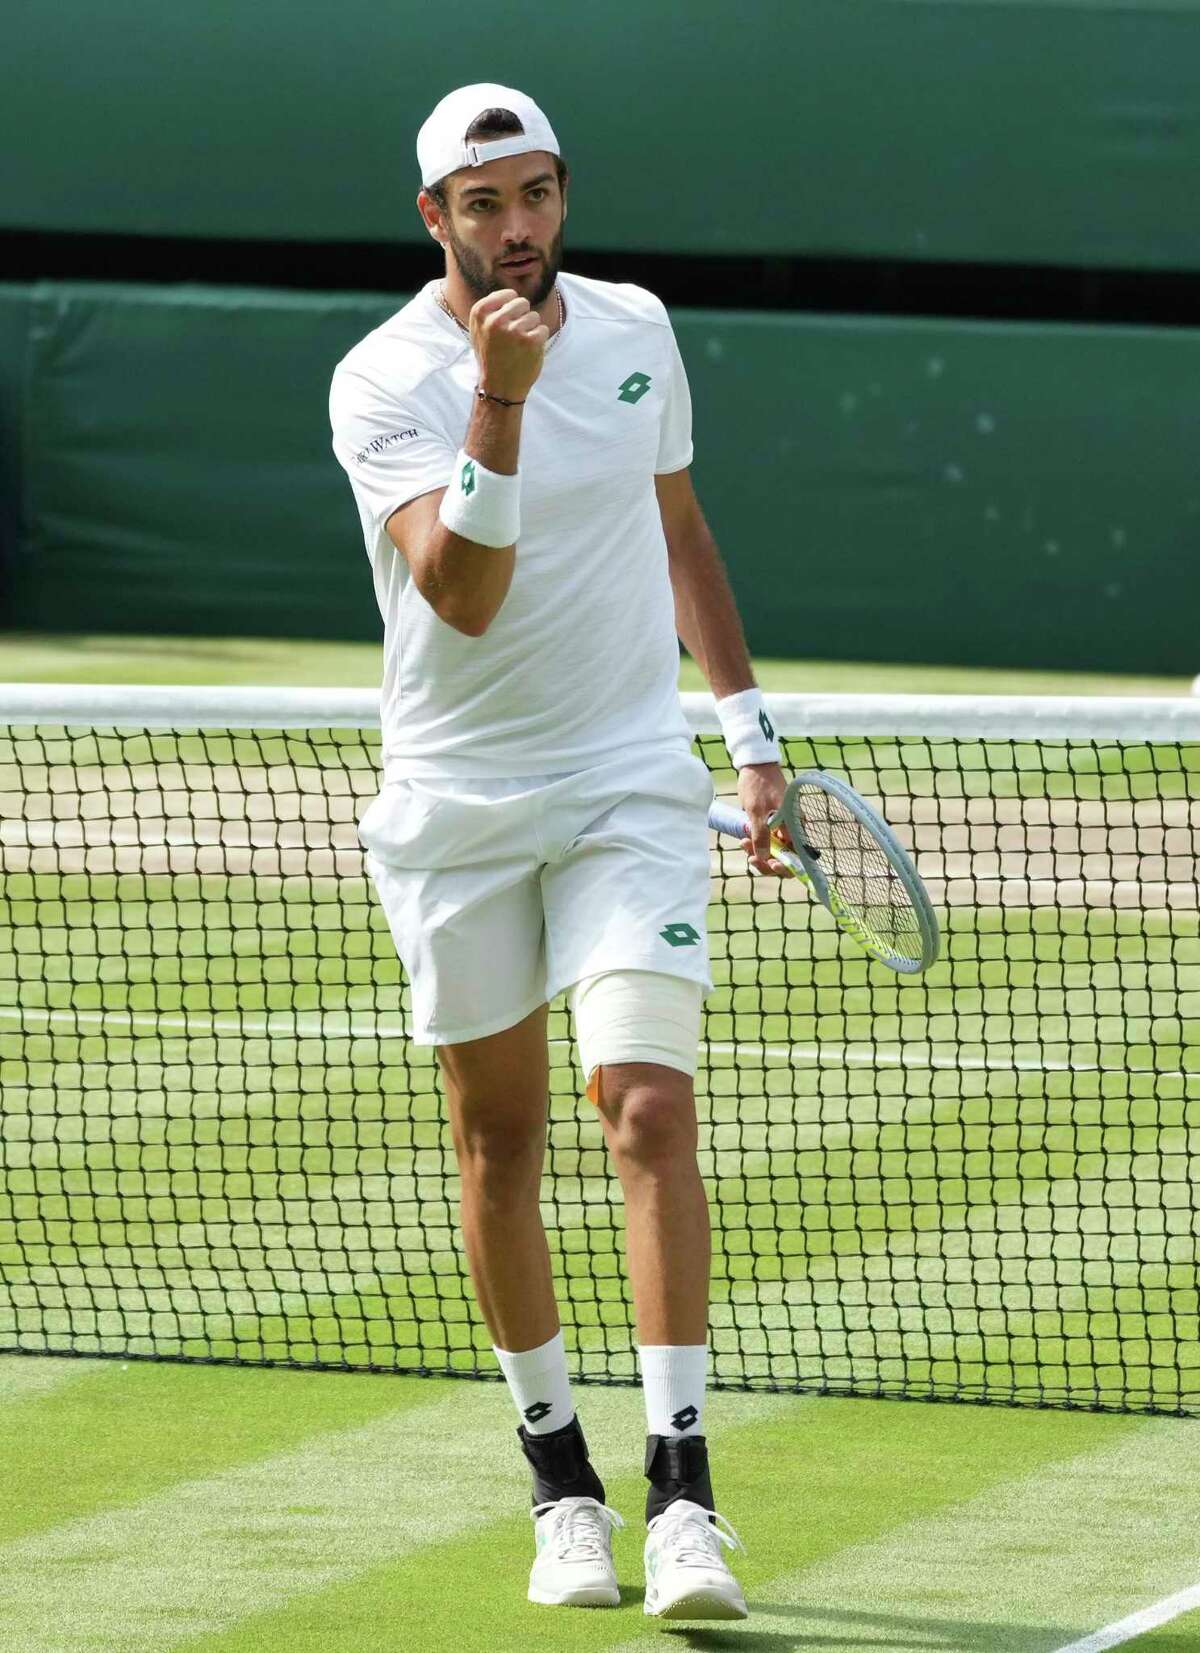 Italy's Matteo Berrettini celebrates winning a point against Serbia's Novak Djokovic during the men's singles final match on day thirteen of the Wimbledon Tennis Championships in London, Sunday, July 11, 2021.